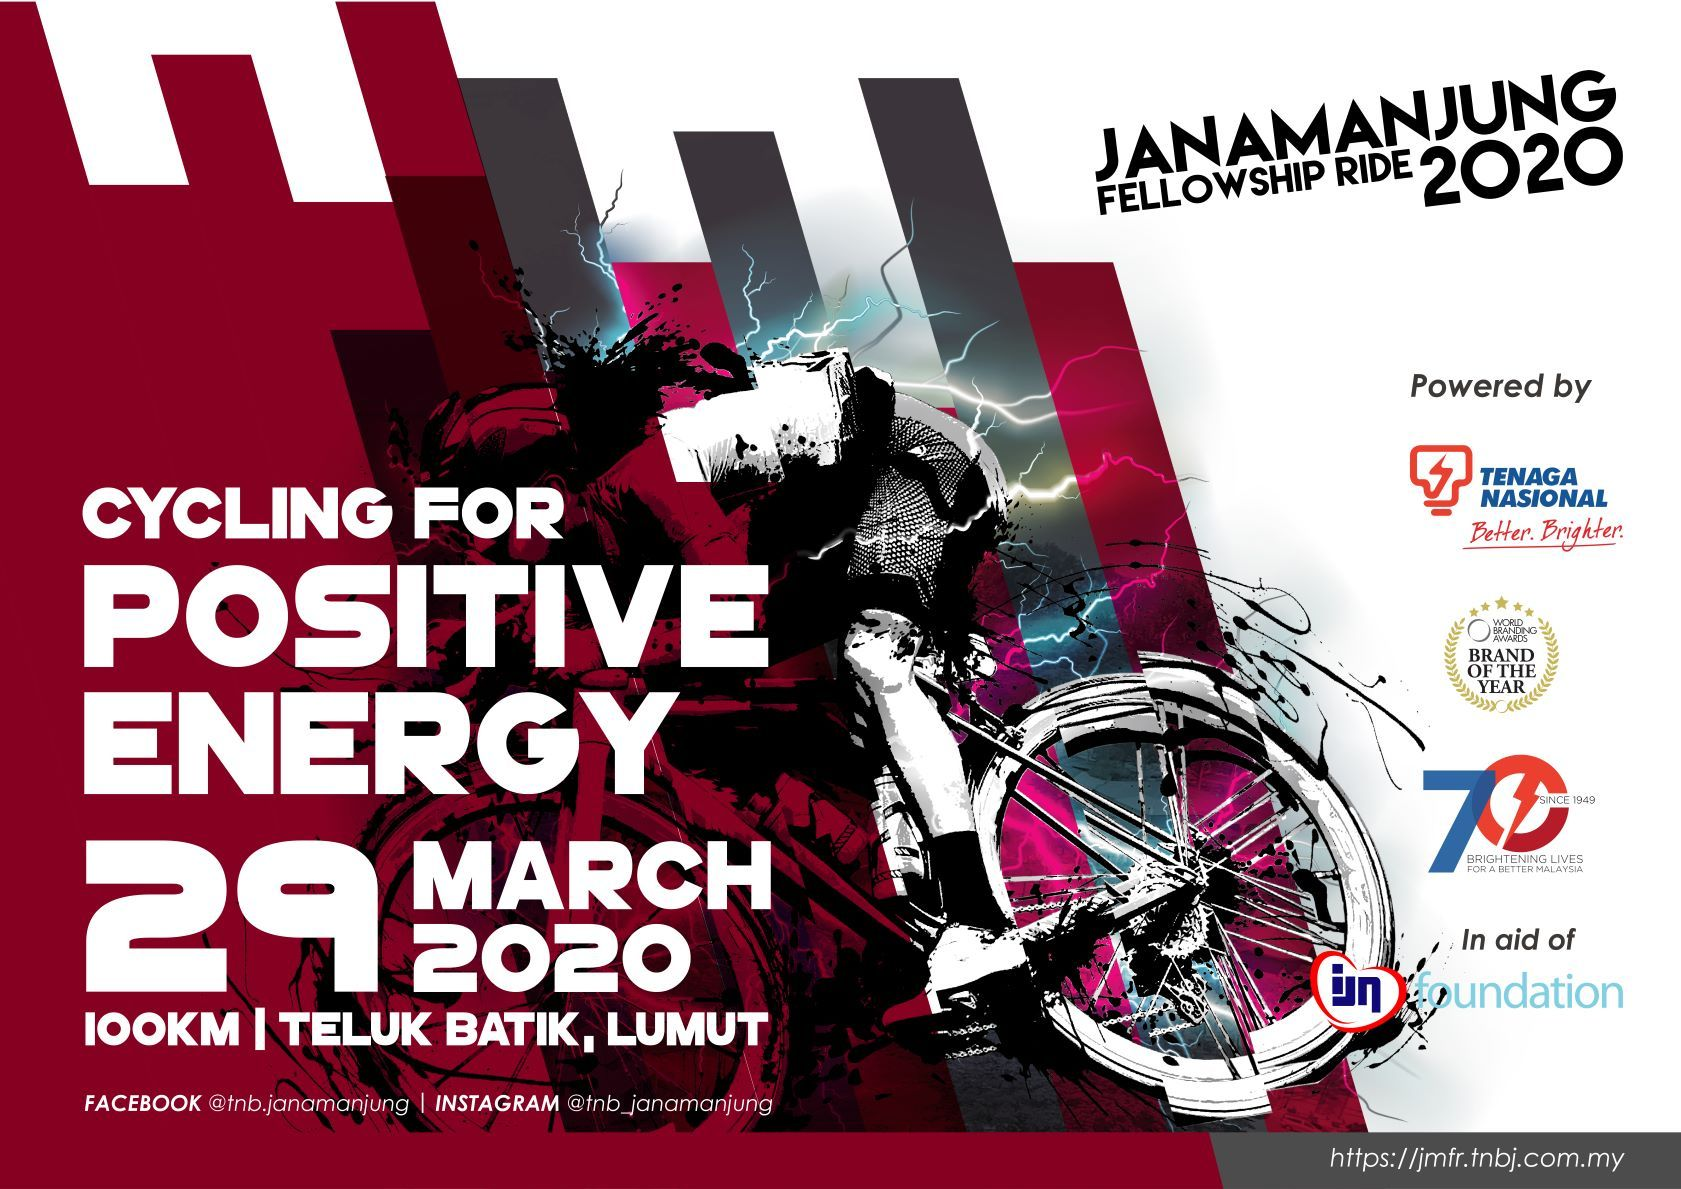 29/3 - Janamanjung Fellowship Ride JMFR 2020